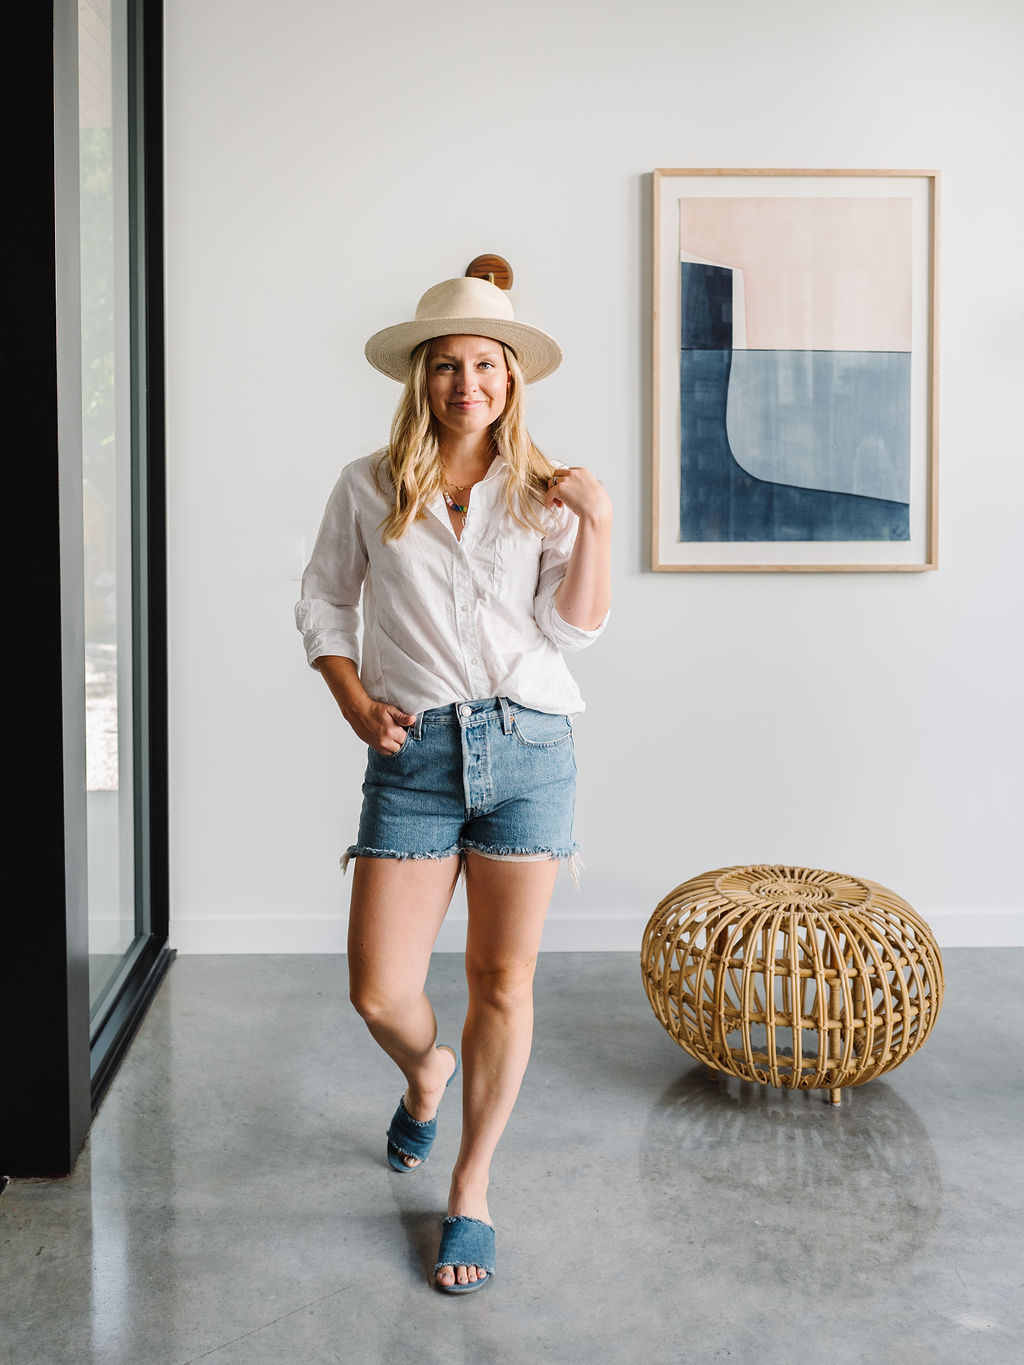 Woman wearing a hat, white shirt and denim jeans